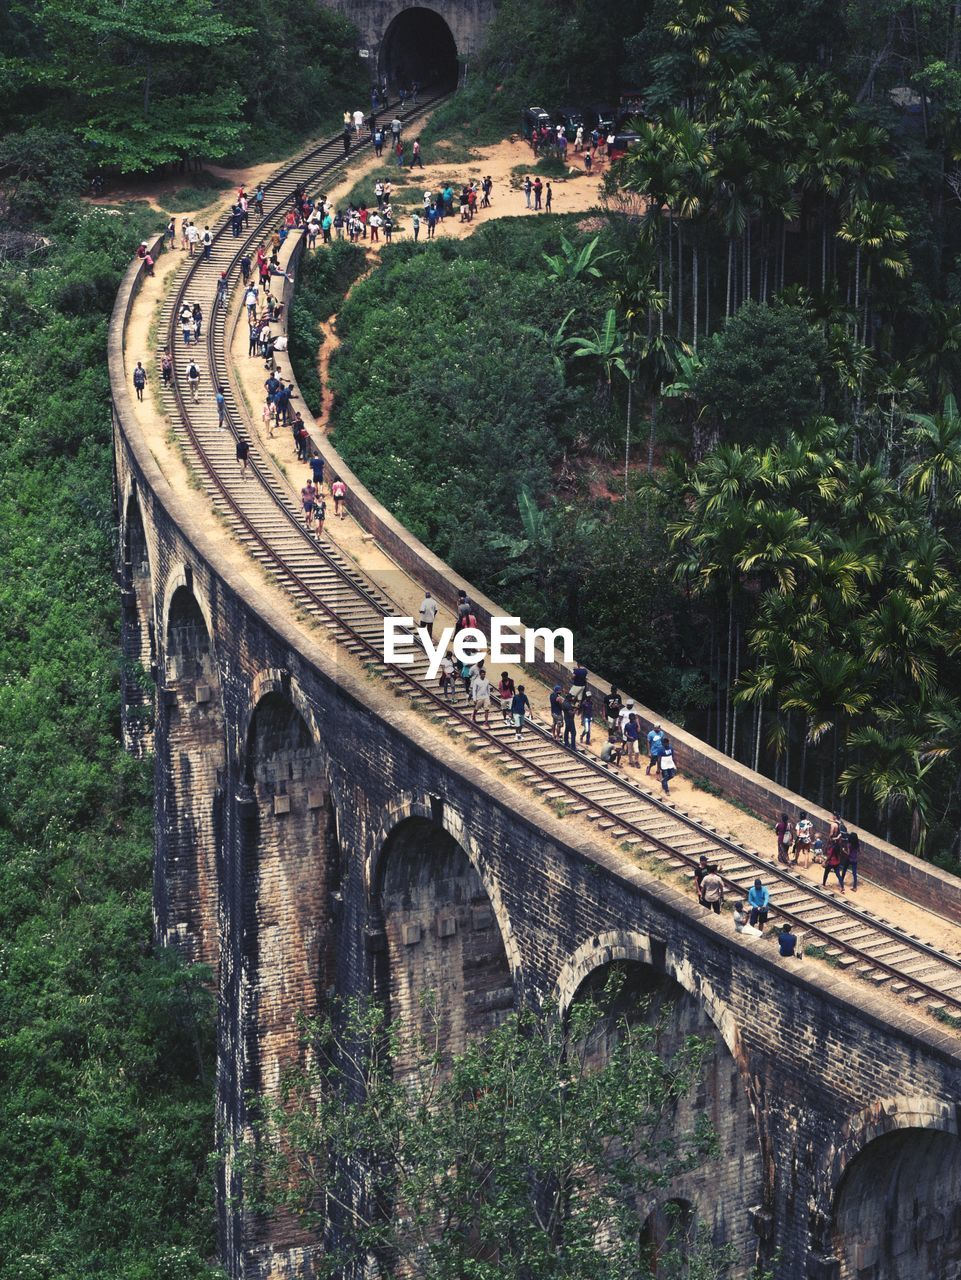 plant, tree, transportation, day, architecture, high angle view, group of people, built structure, nature, connection, bridge, bridge - man made structure, large group of people, travel, real people, crowd, road, outdoors, travel destinations